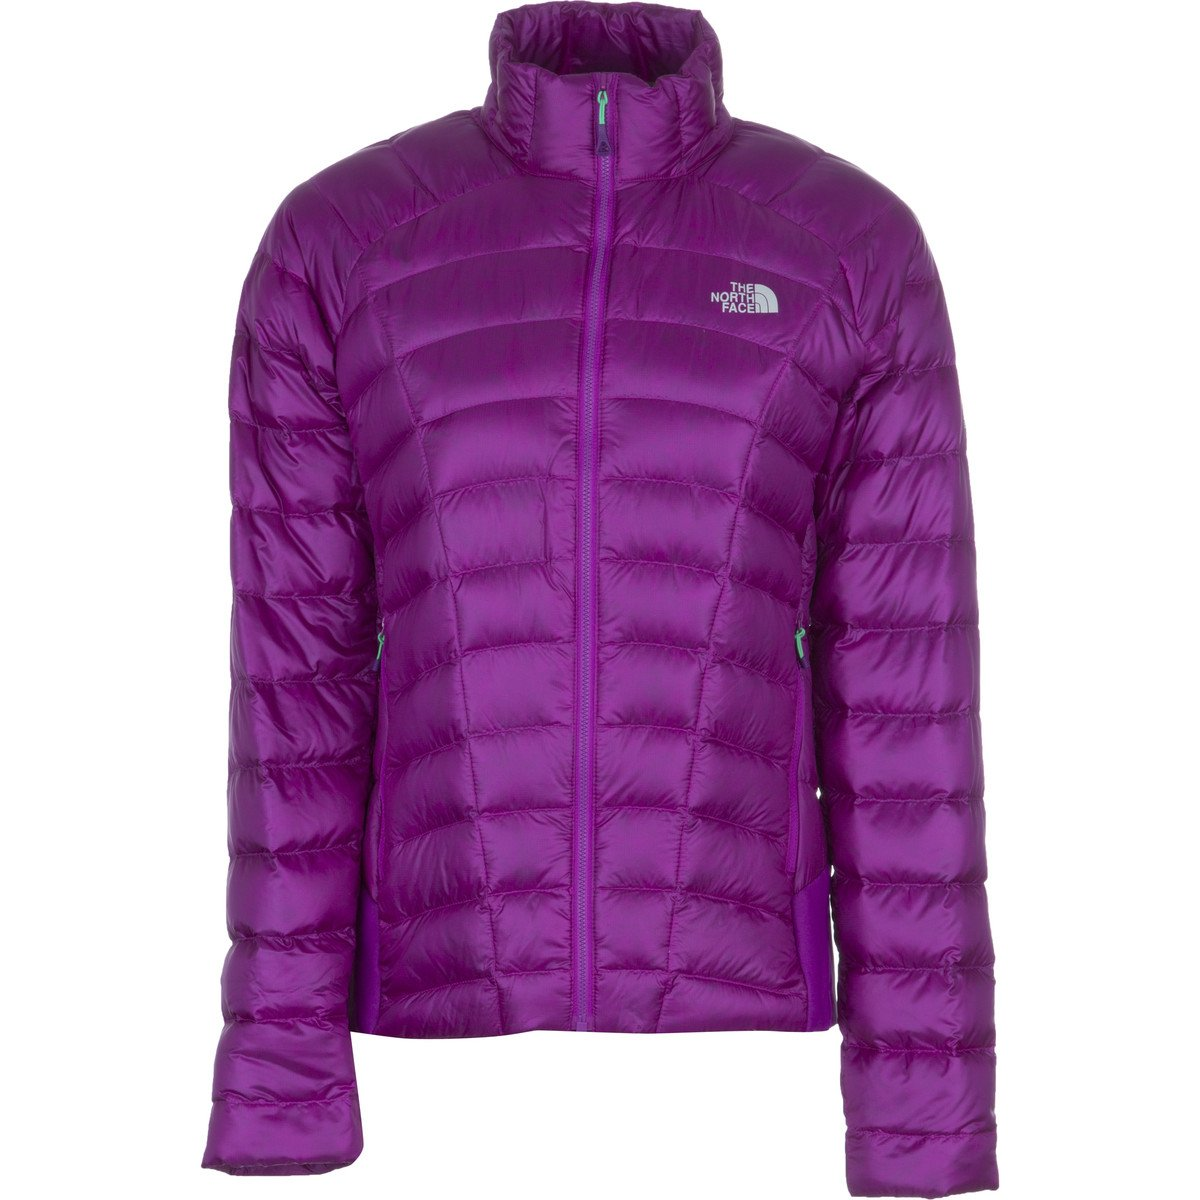 b6d8b9300 Amazon.com : The North Face Women's Quince Jacket Down, Magic ...